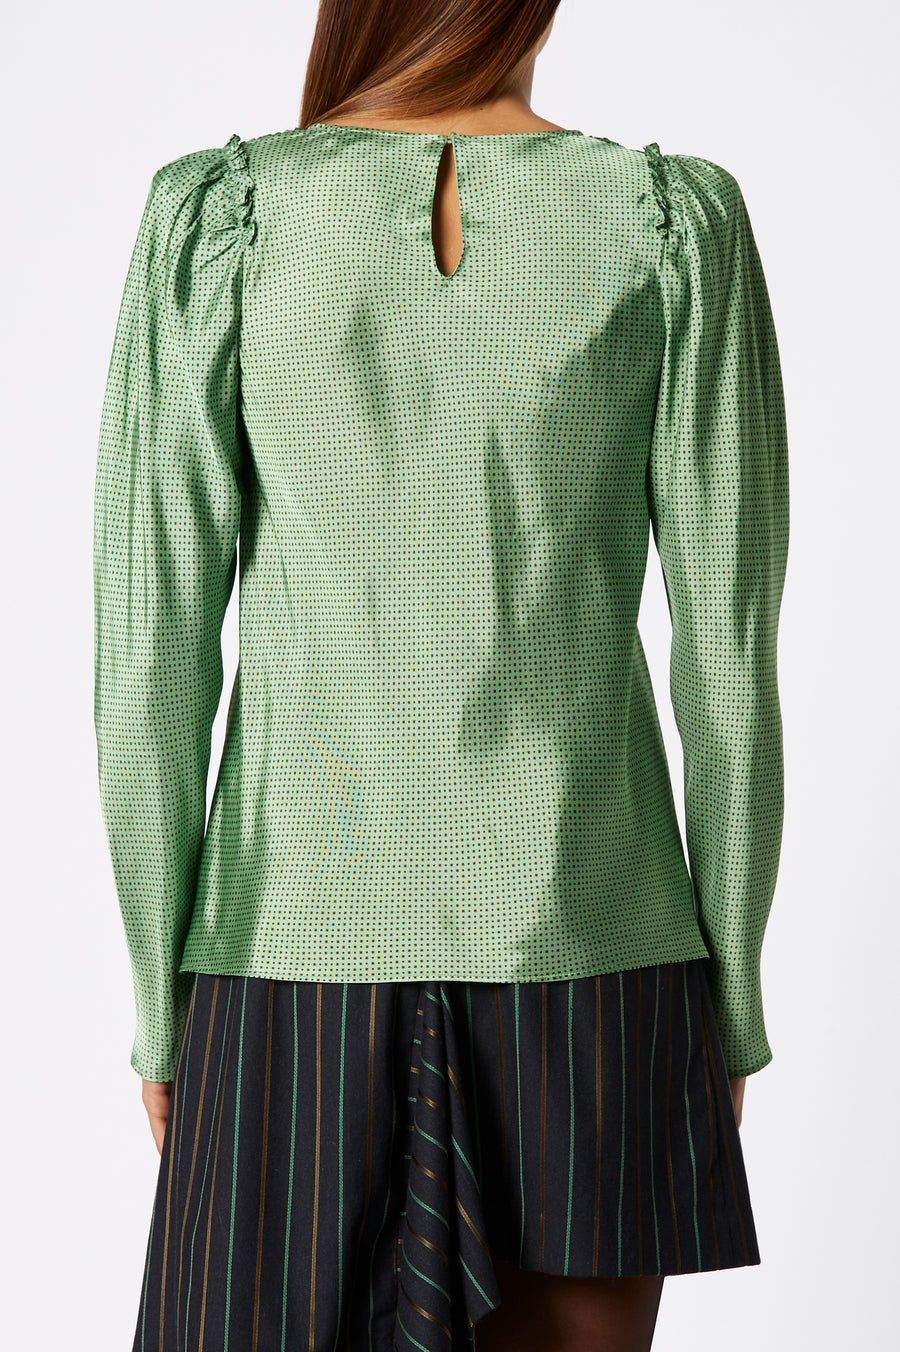 Printed Twill Blouse, gathered detail on shoulder, high scoop neckline, color apple